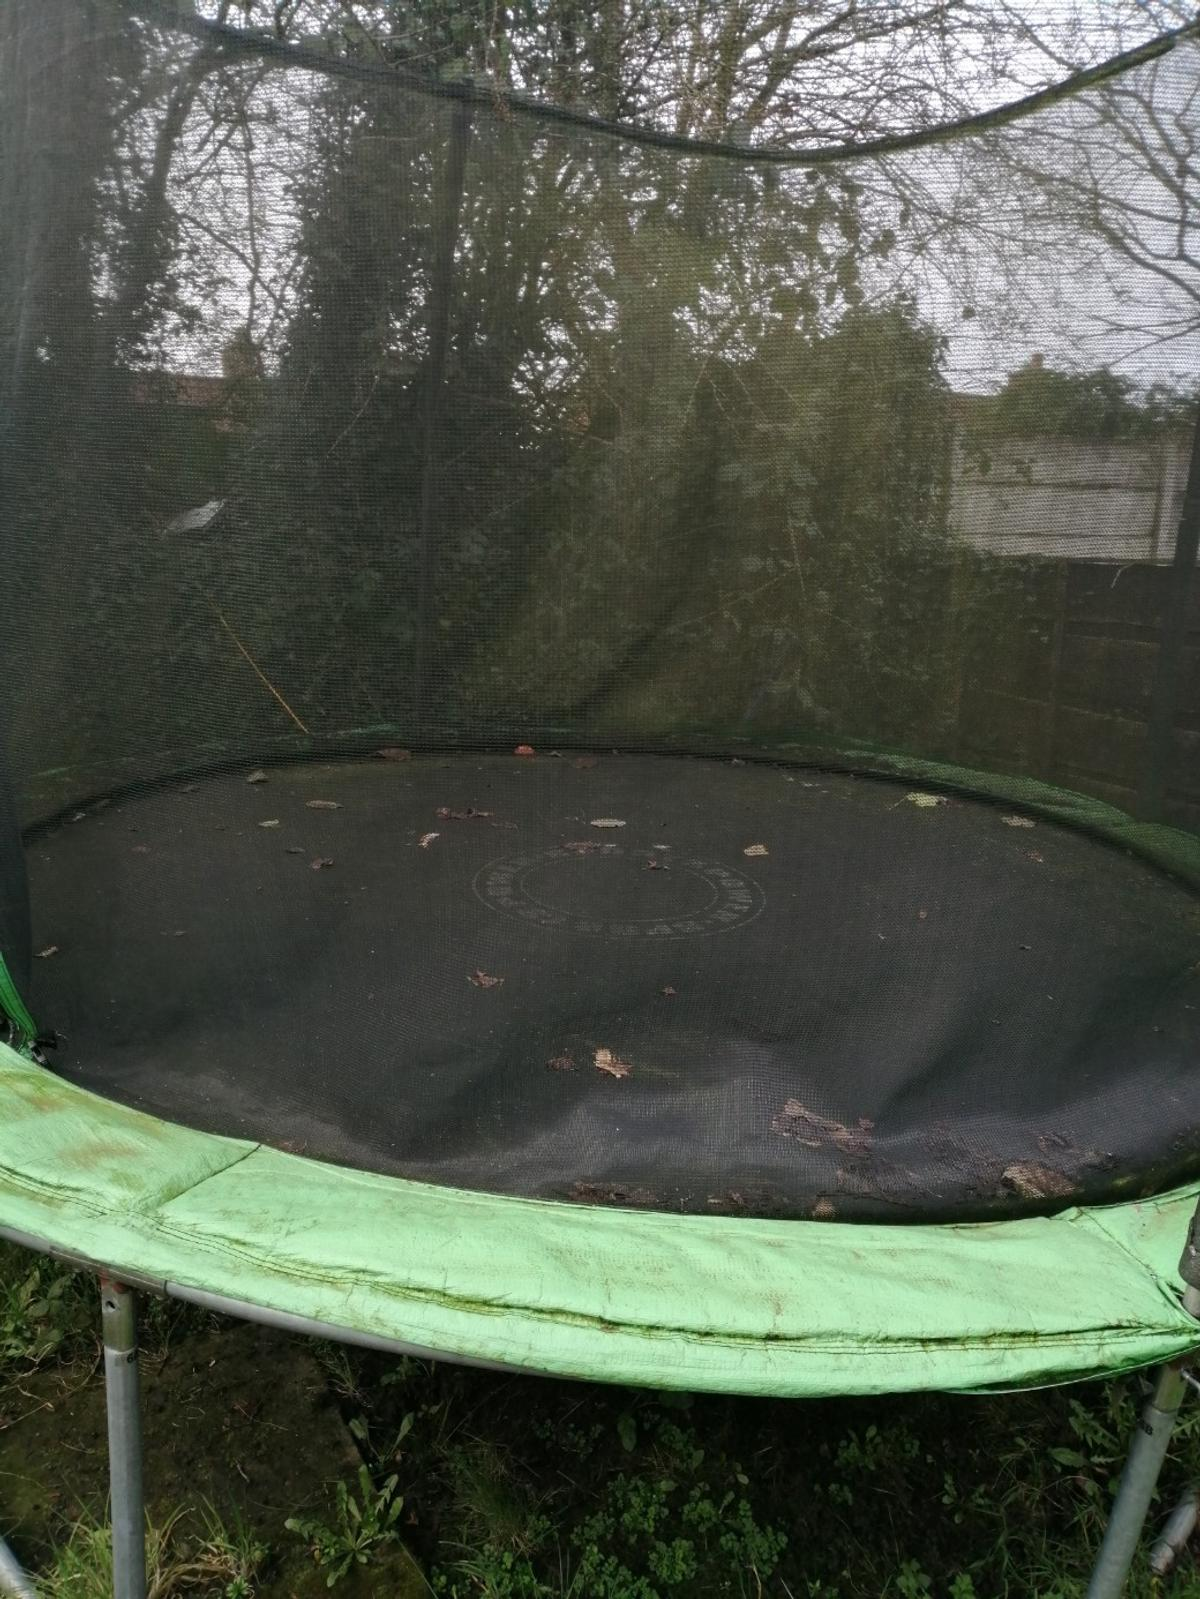 Trampolina, collect per person. Need to go soon as possible Text 07763136767